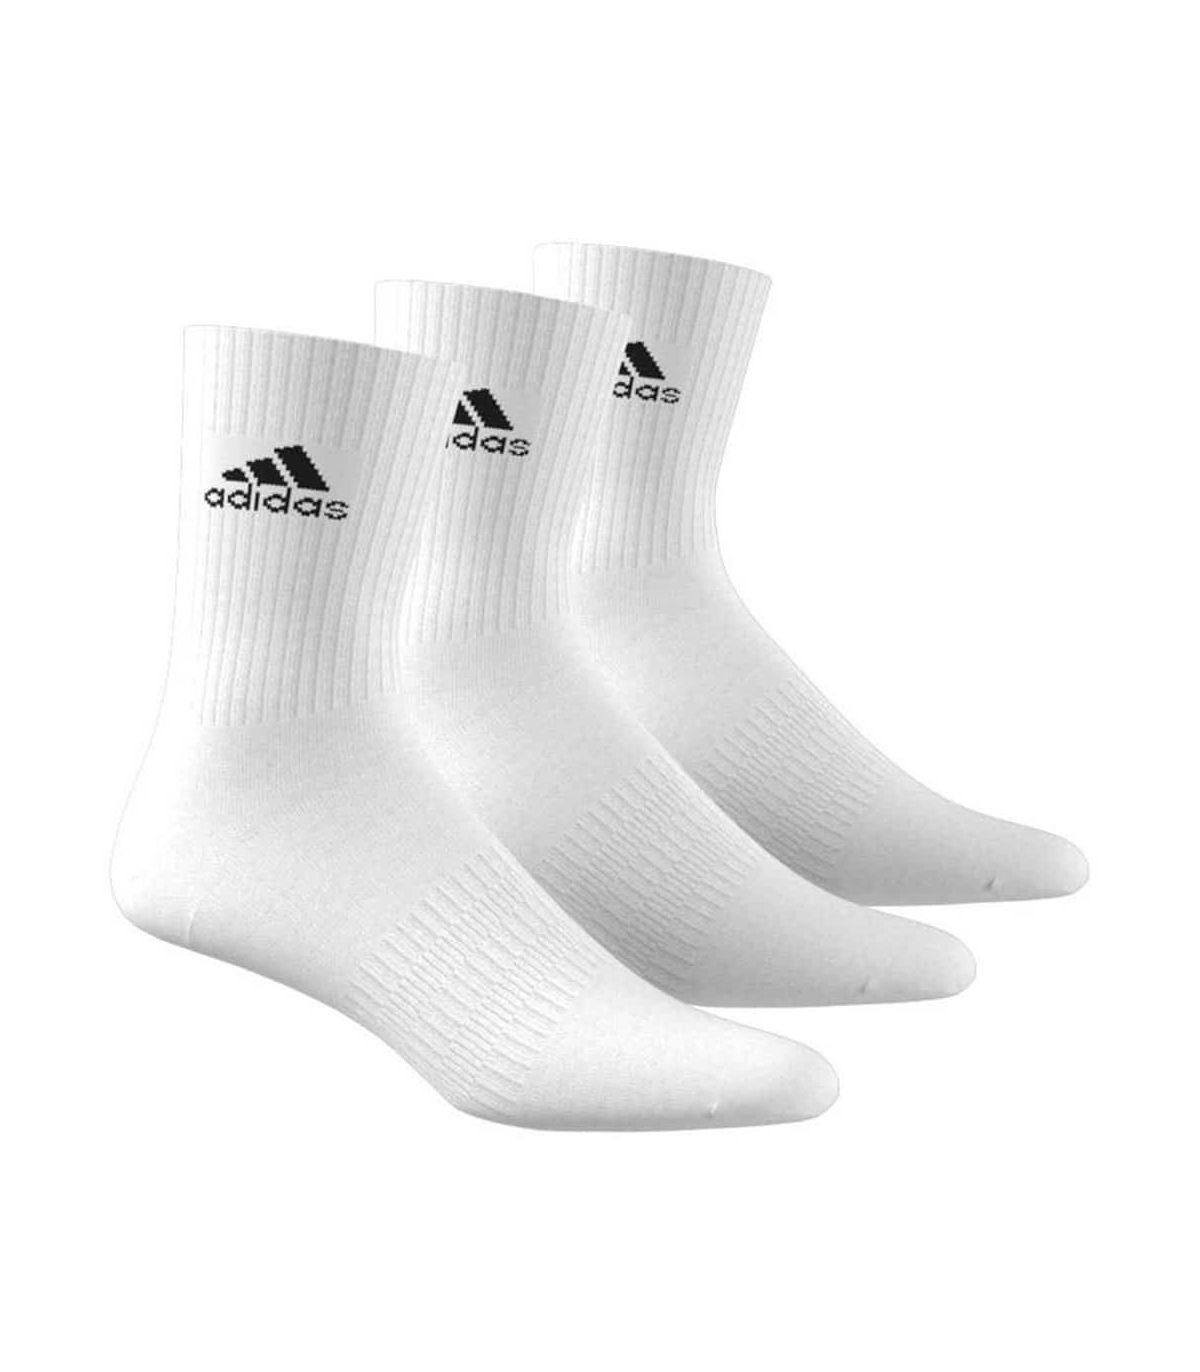 Adidas Socks Cushioned White